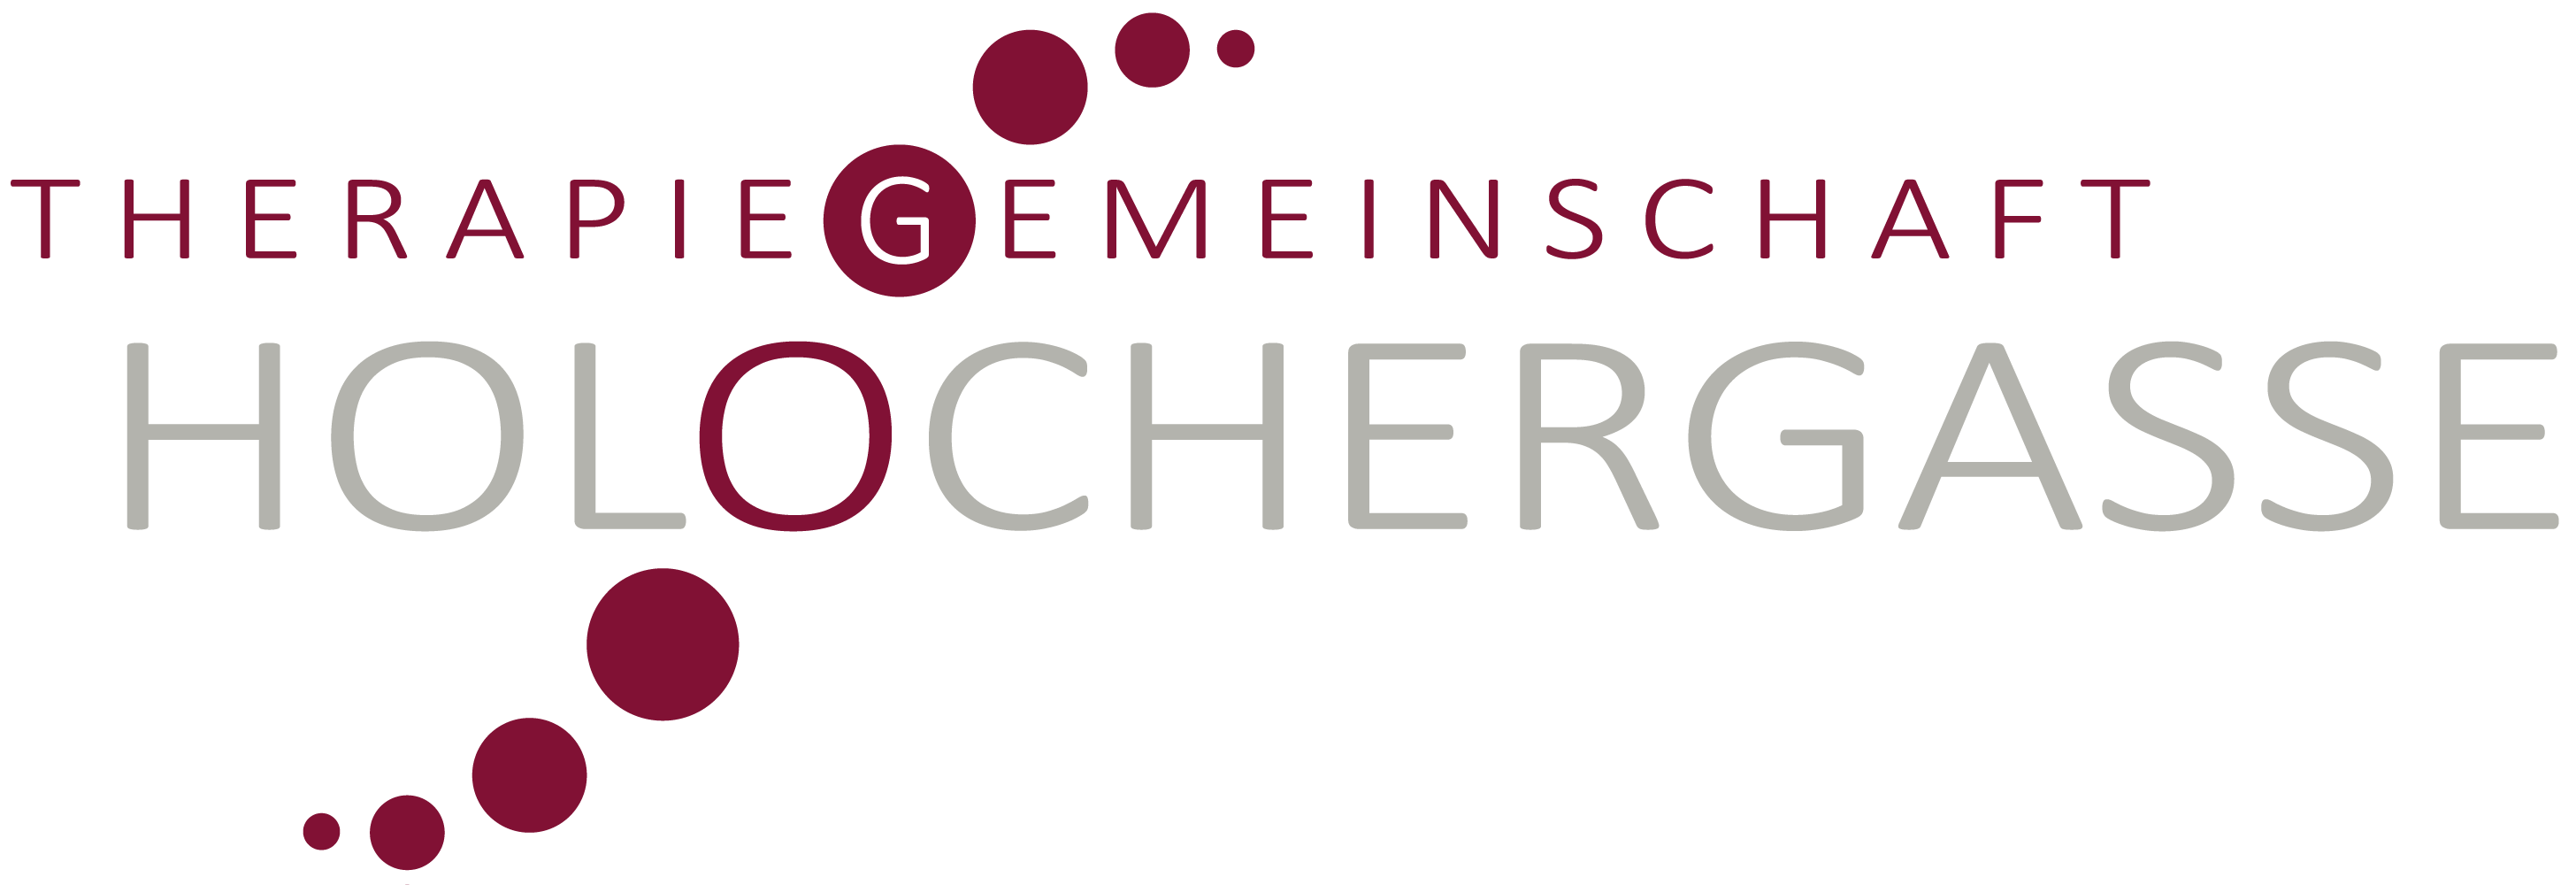 Therapiegemeinschaft Holochergasse